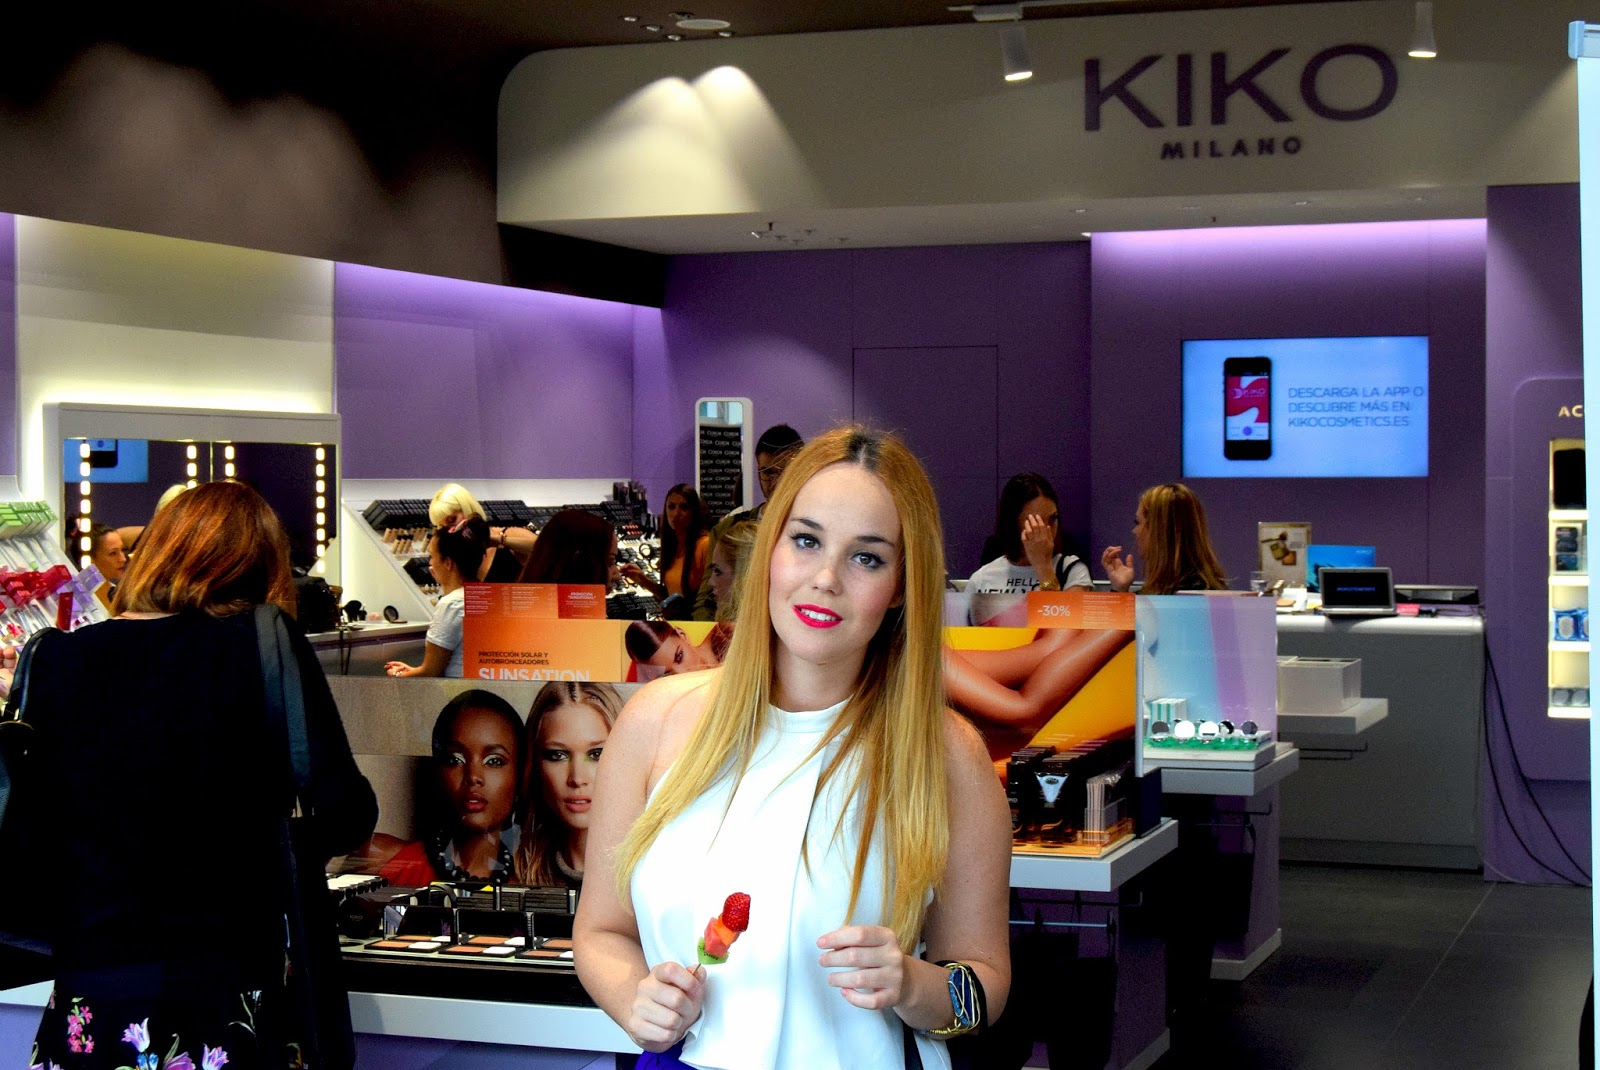 kiko tenerife, kiko make up, tenerife, nery hdez, beauty bloggers en tenerife